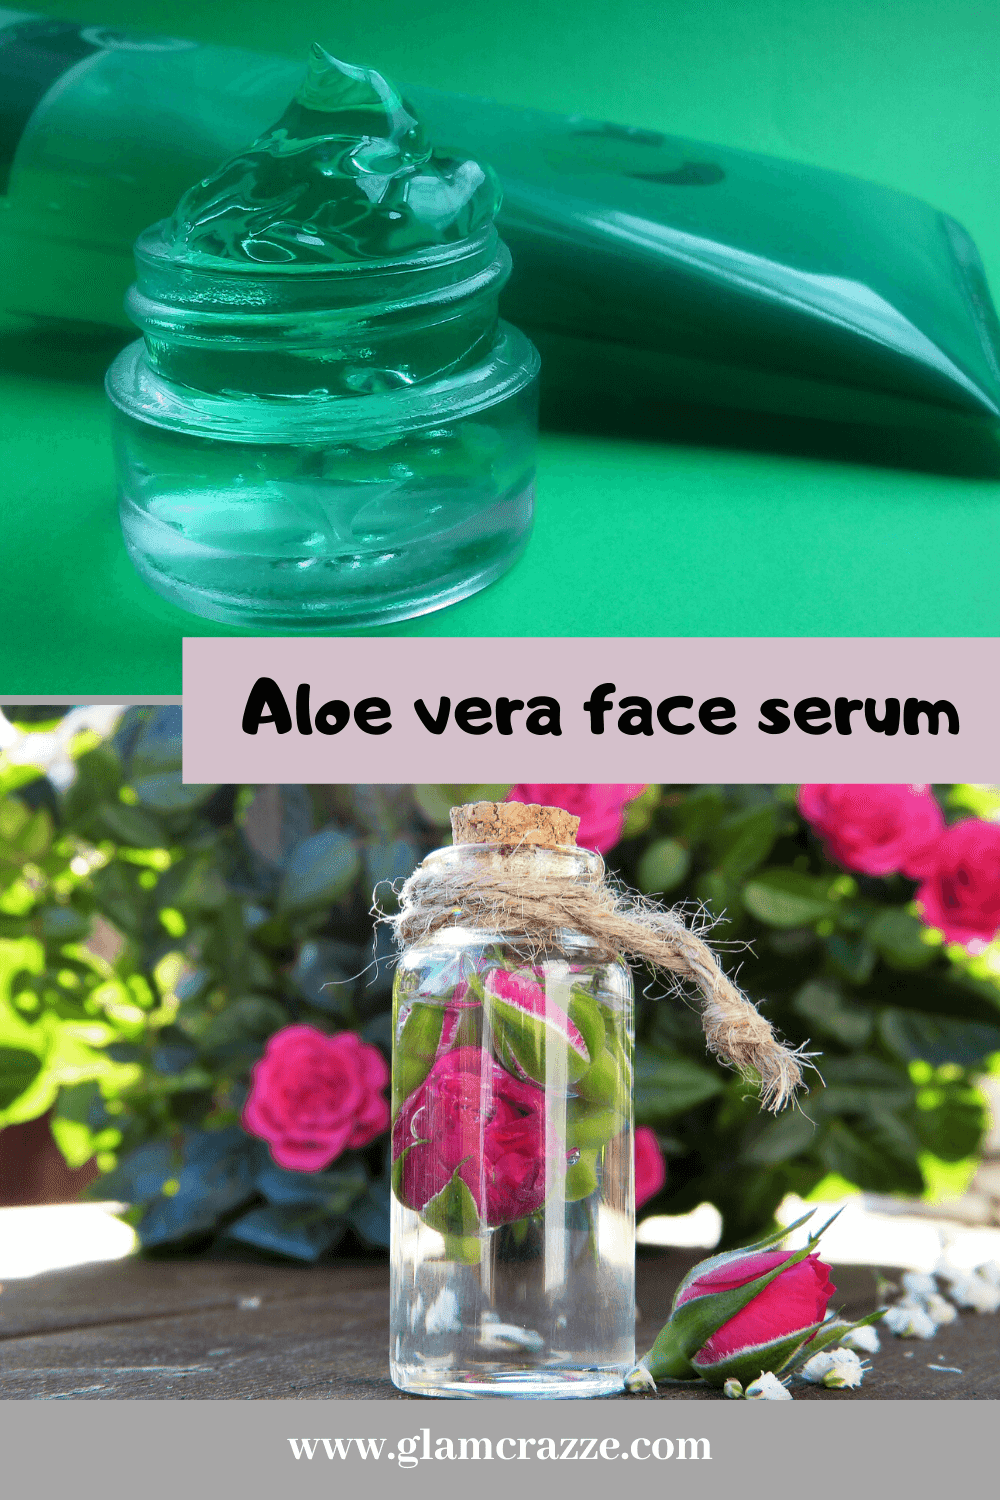 How to use aloe vera and rose water on face